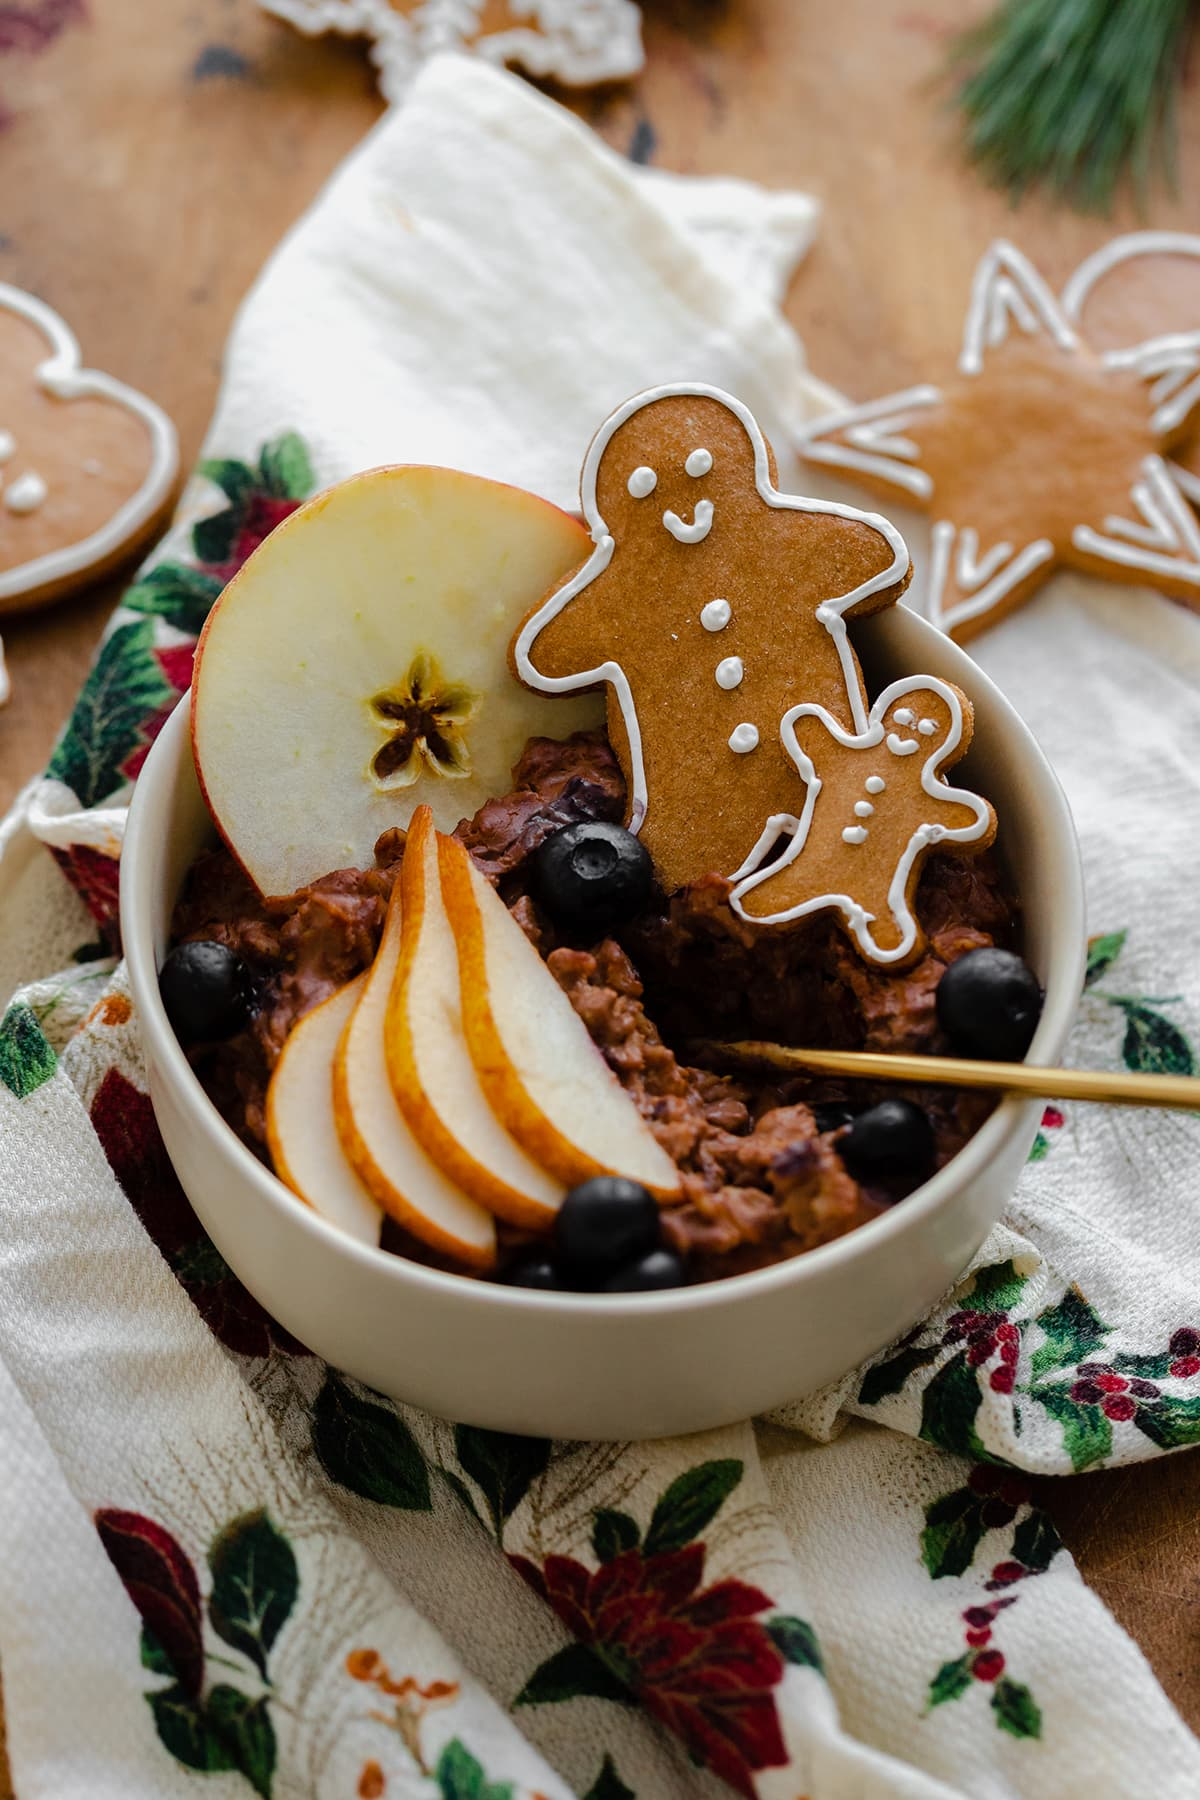 An overhead close up shot of Gingerbread oatmeal in a beige bowl garnished with sliced pear, a slice of apple, a few blueberries, and two gingrbread men. On light wooden background with a christmas tea towel under the bowl and gingerbread cookies around it.